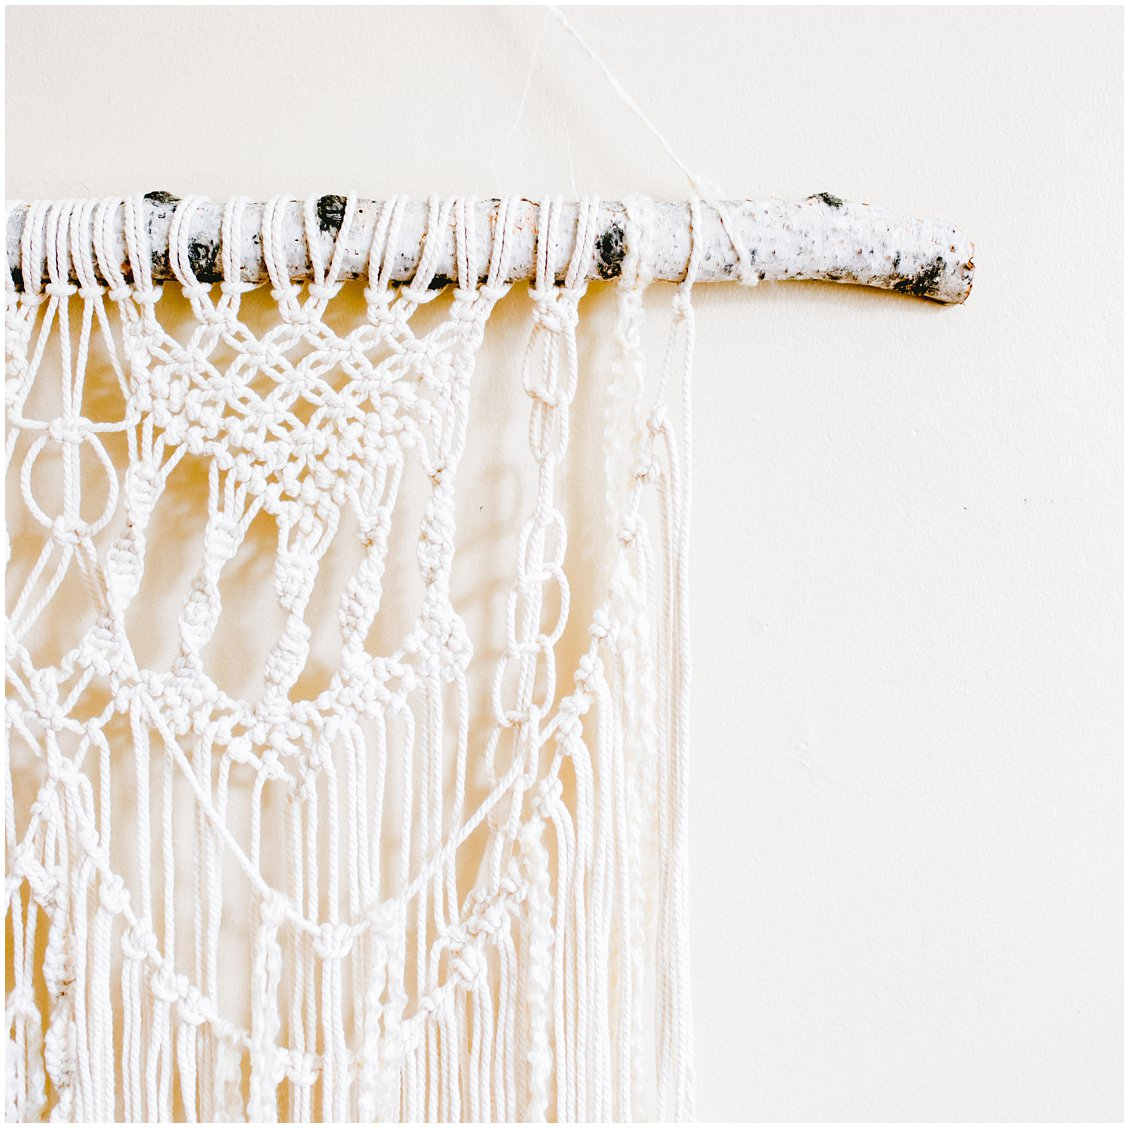 St Louis Bohemian Apartment Decor Wall Macrame by Pattengale Photography